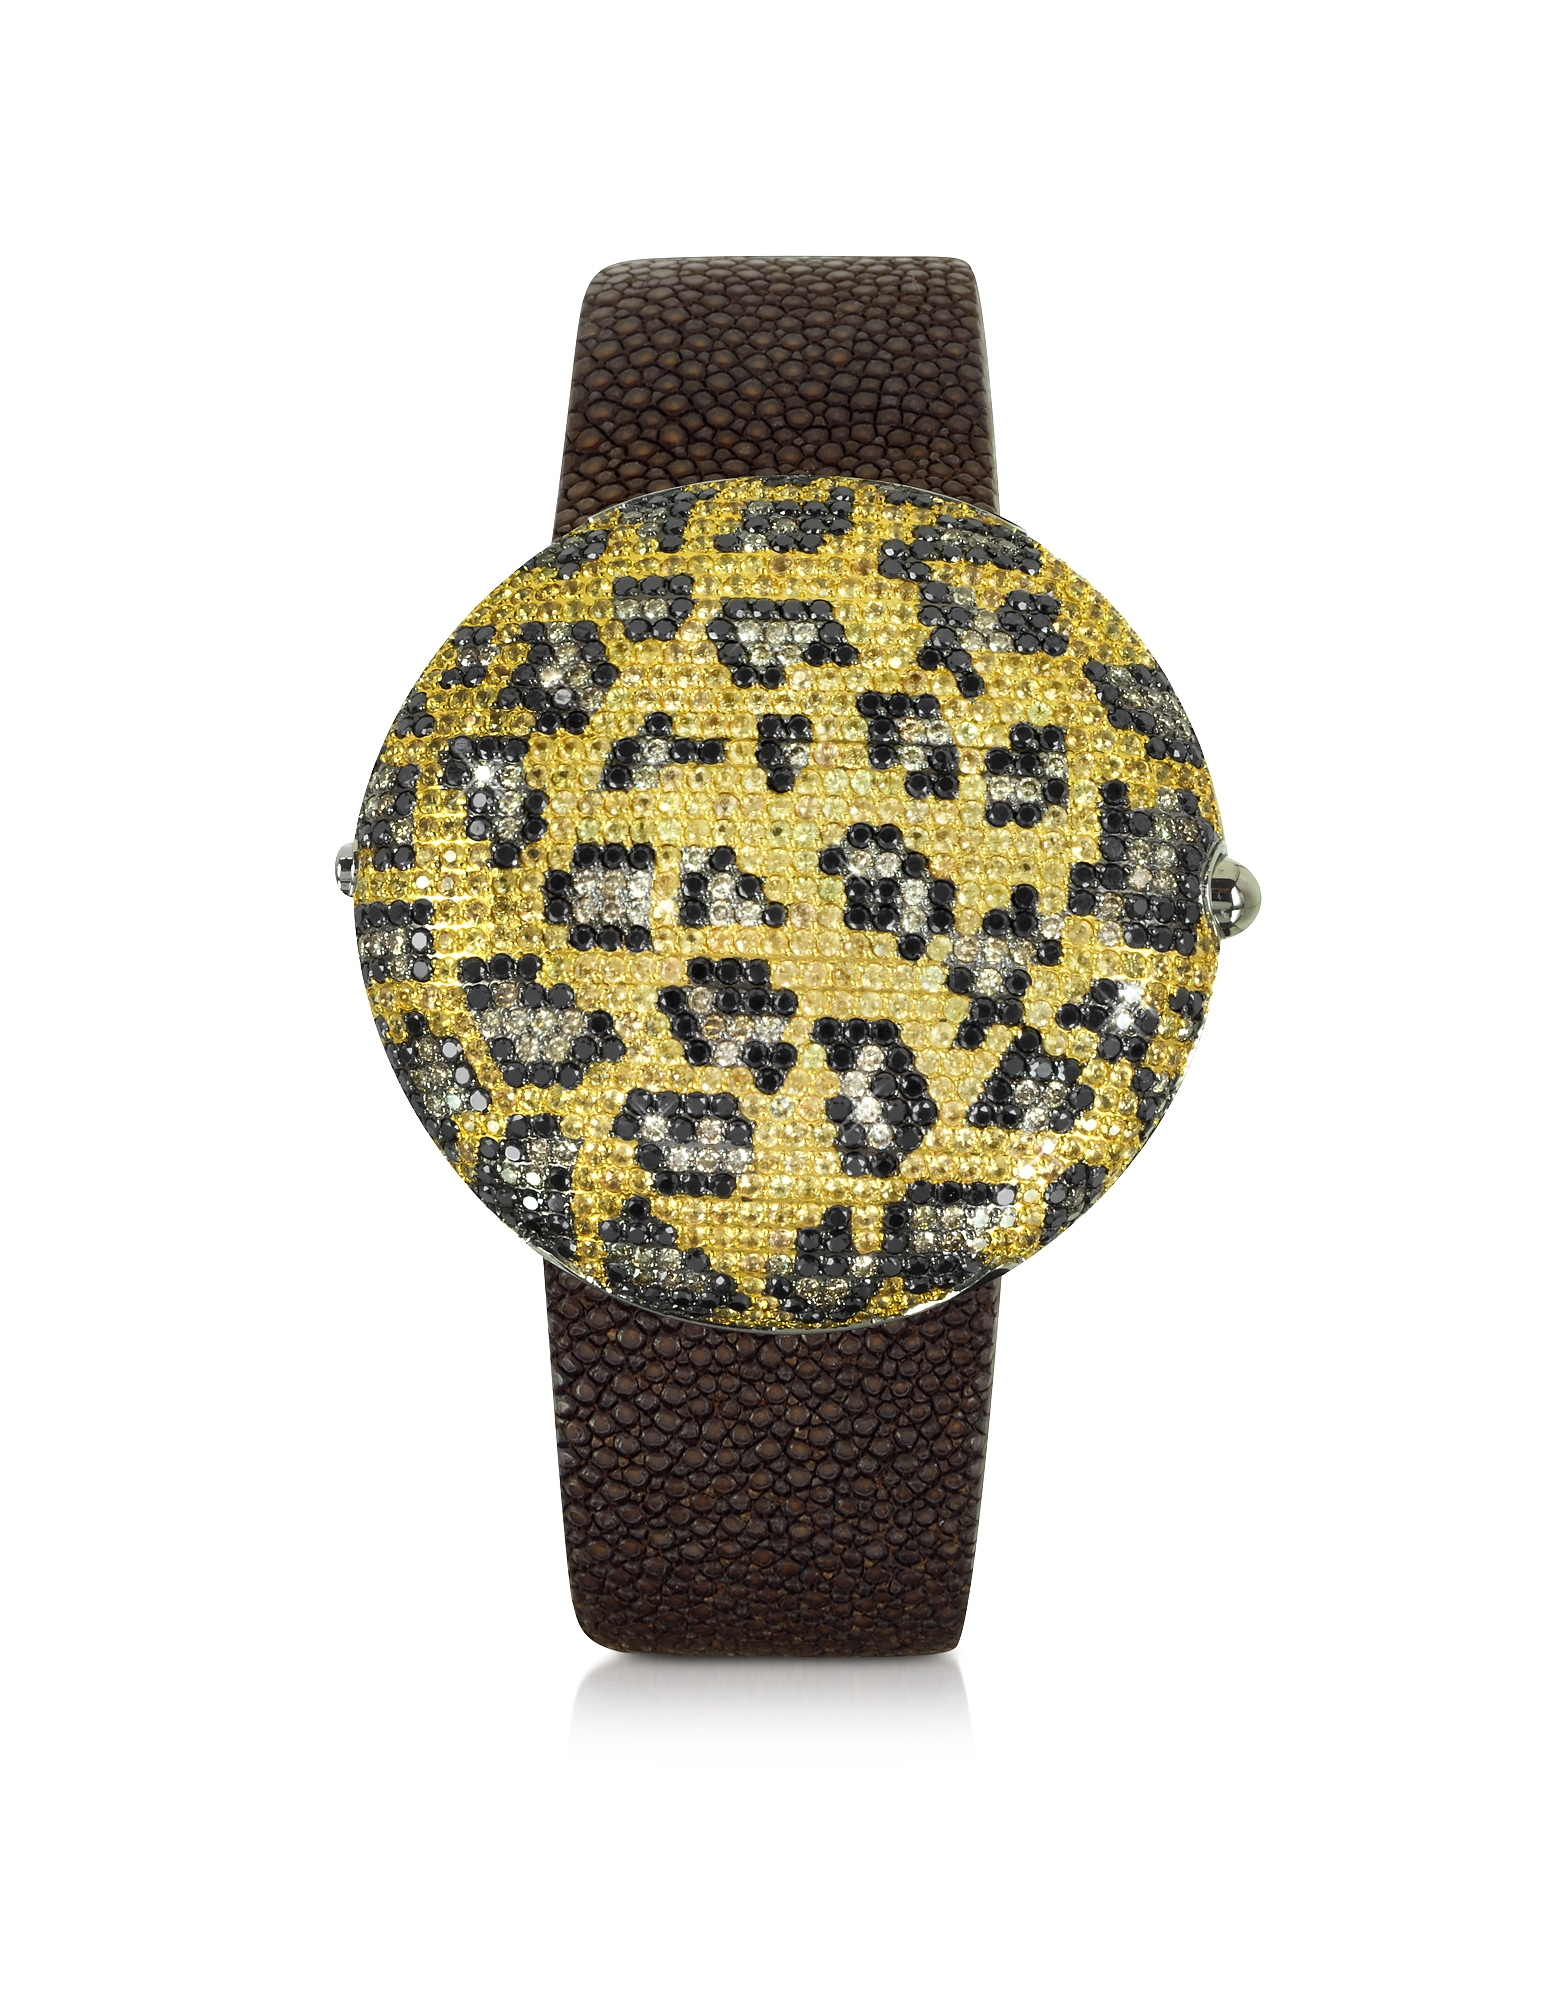 Christian Koban Women's Watches, Clou Leopard Diamond Dinner Watch